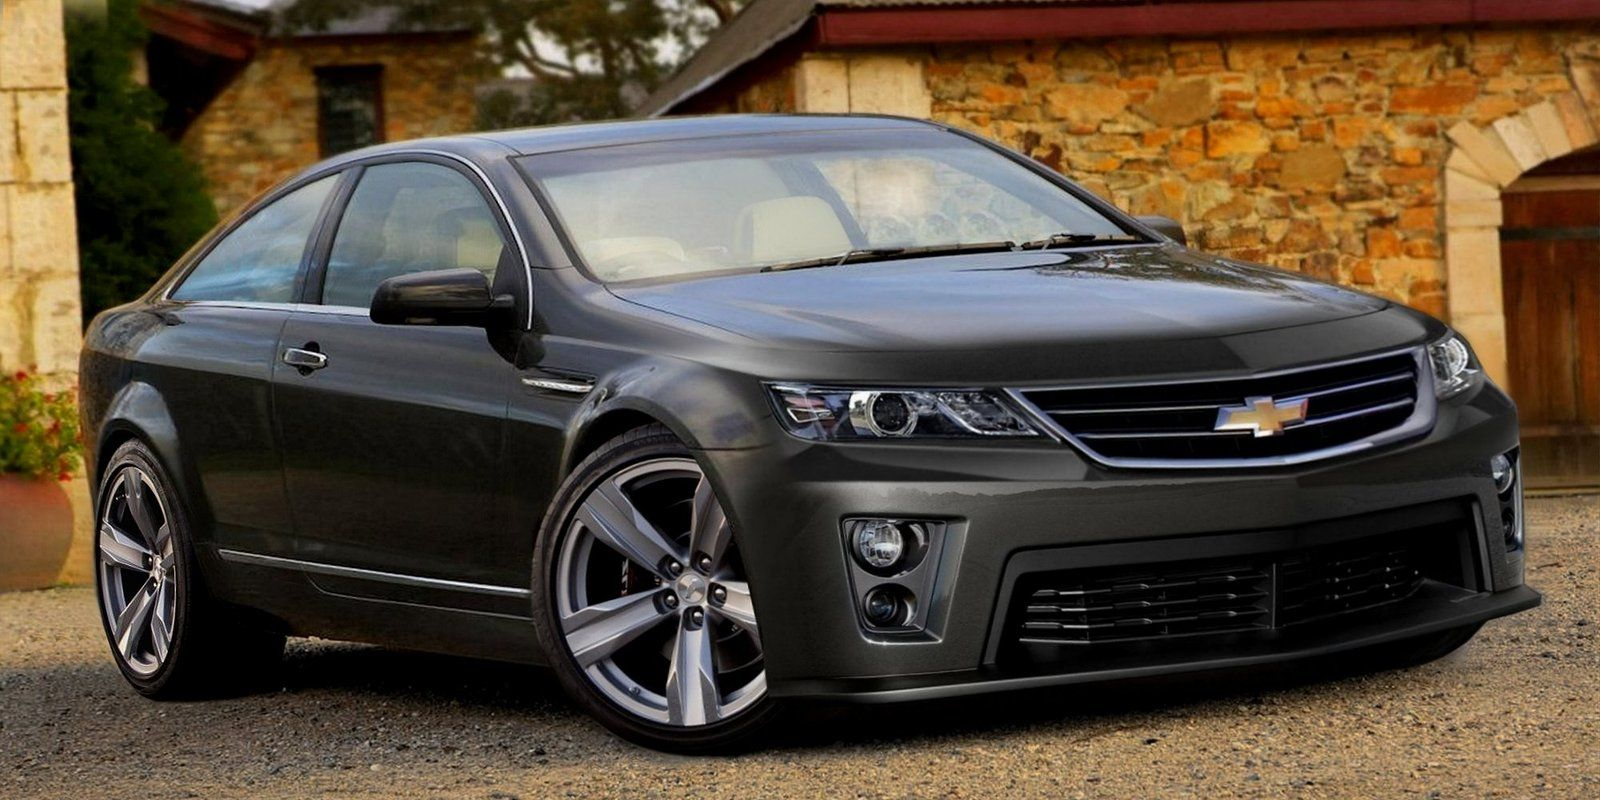 2016 Chevrolet Impala Release Date 2017 All The Other Ss I Have Seen Are So Bland Now This One Is Much Hotter